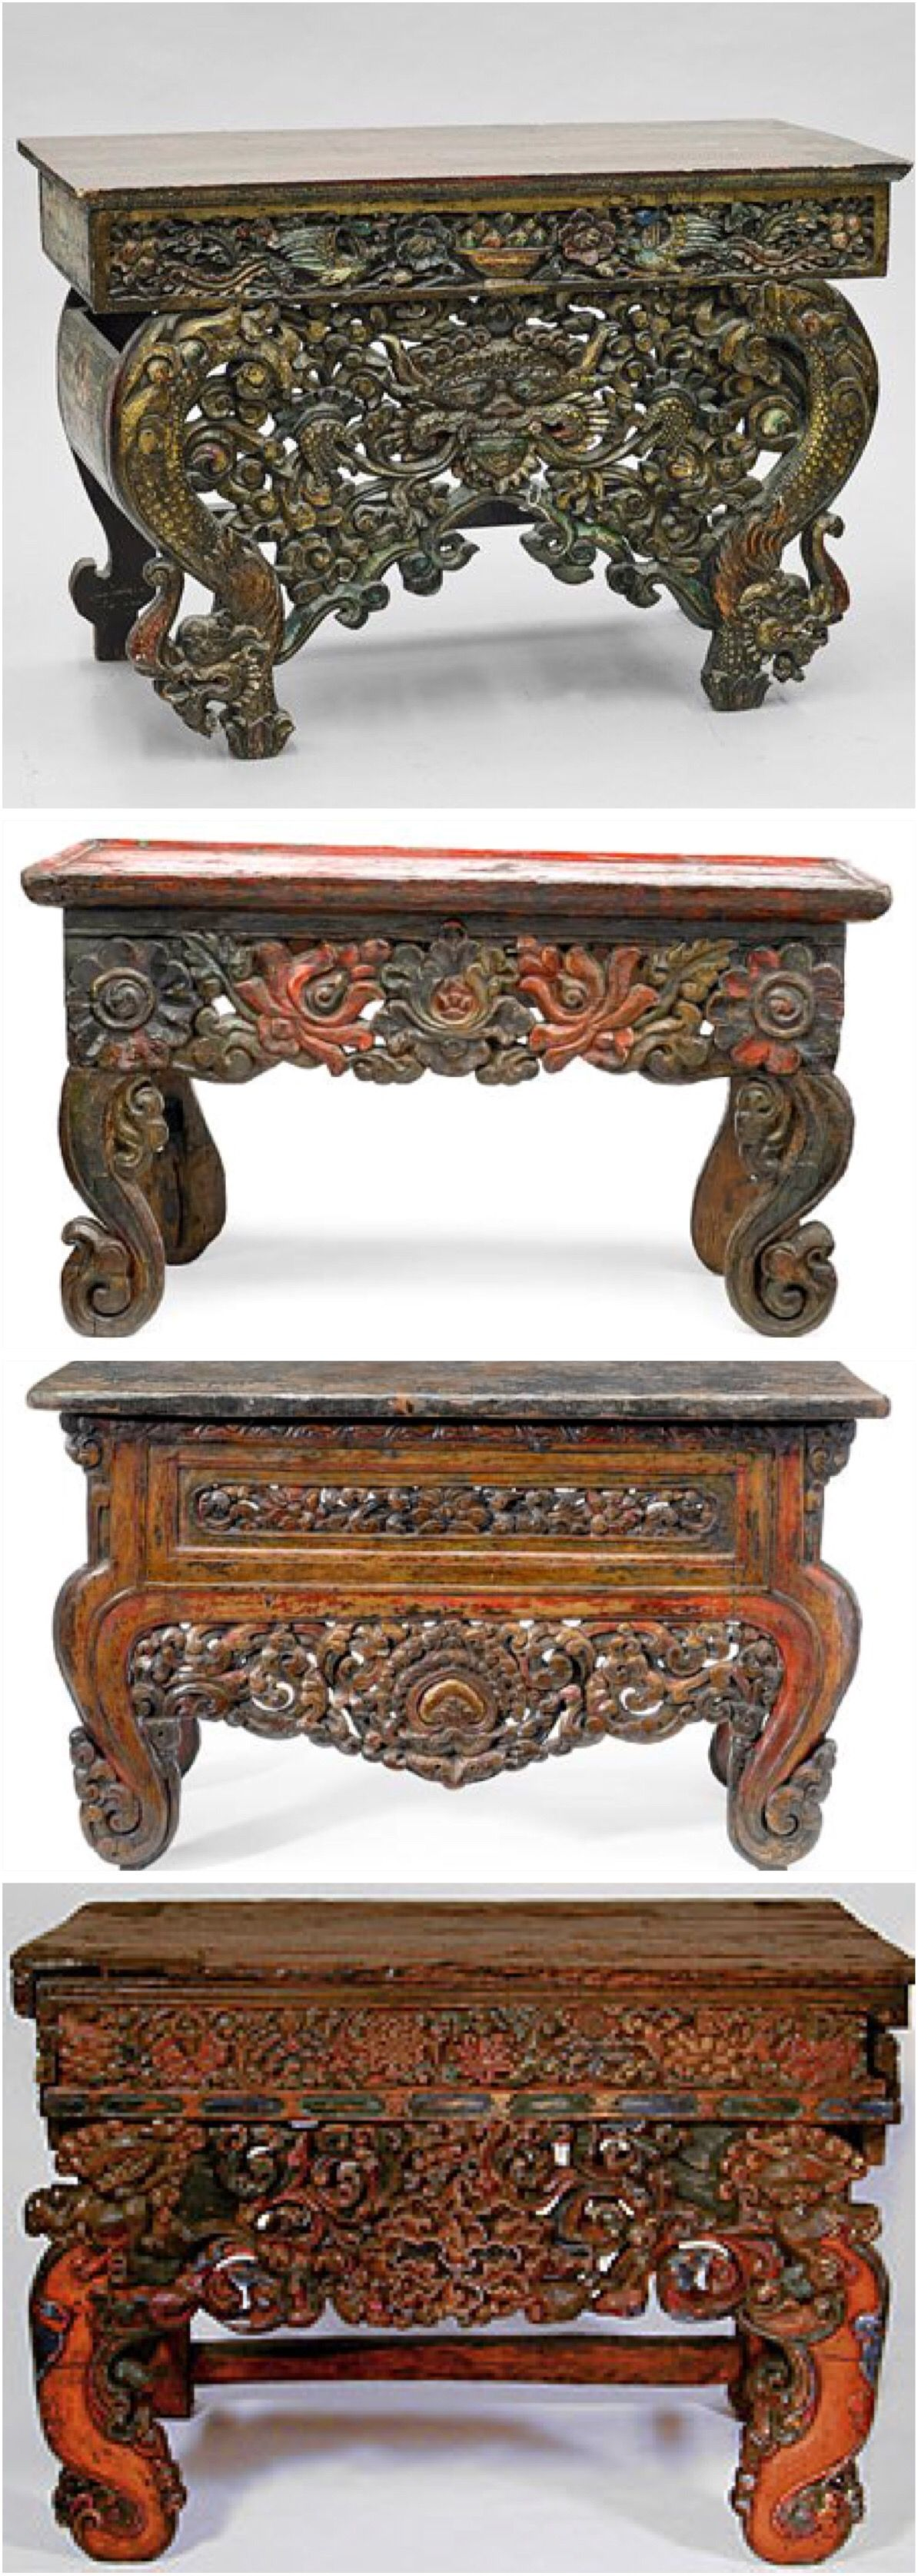 Different Examples Of Tibetan Altar Table 15th 17th Century. From Private  Collections And Pacific